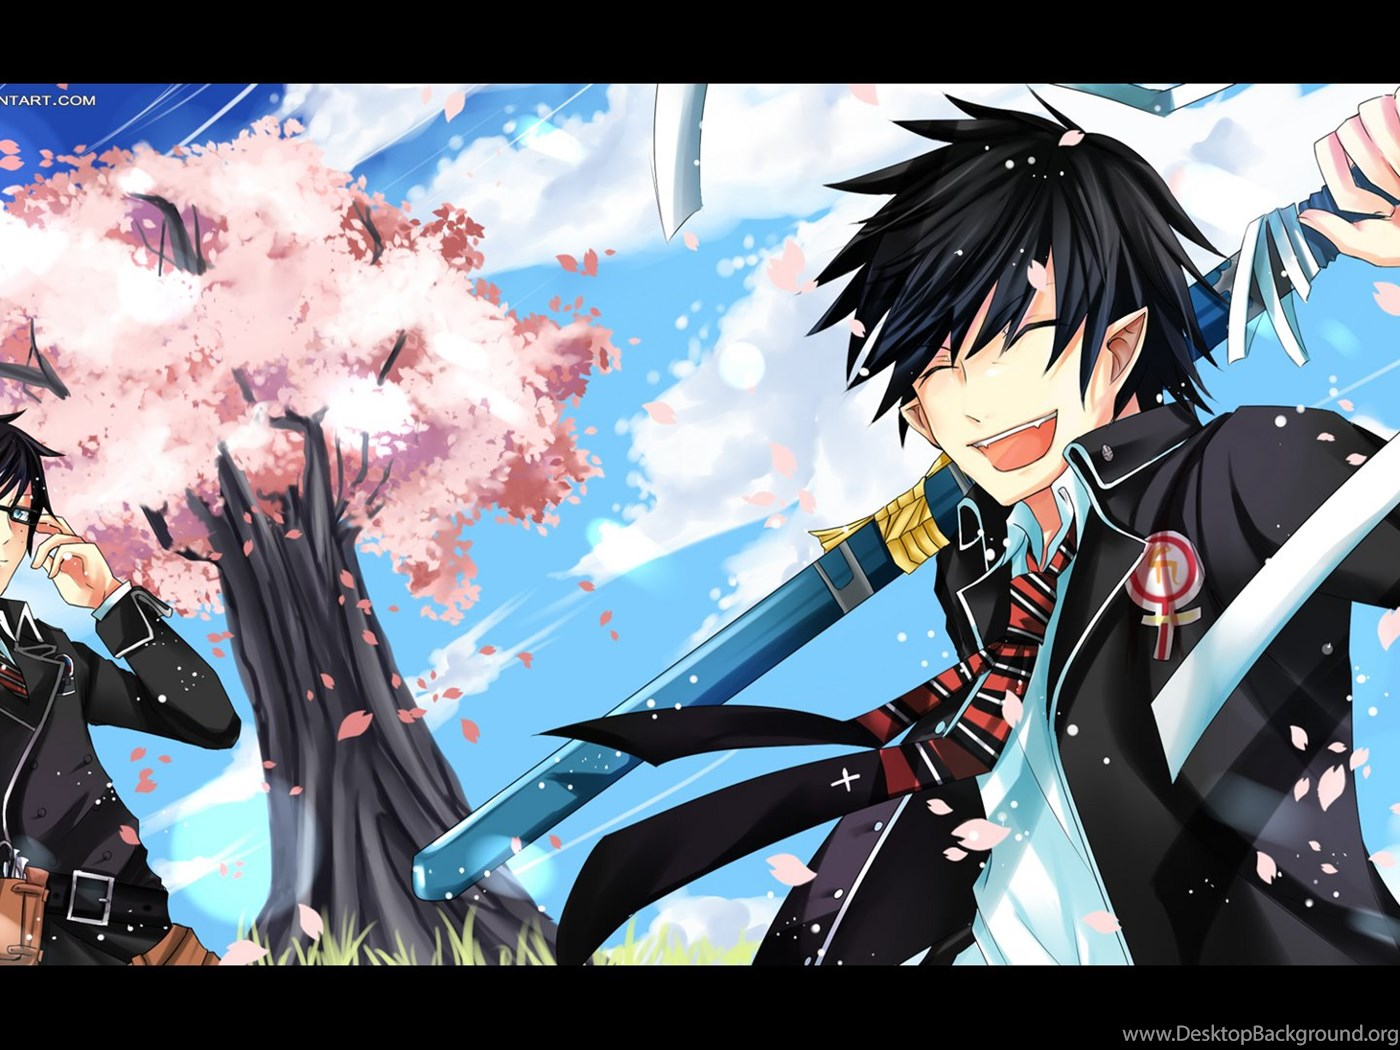 Wallpapers Ao No Exorcist Anime Image Desktop Background